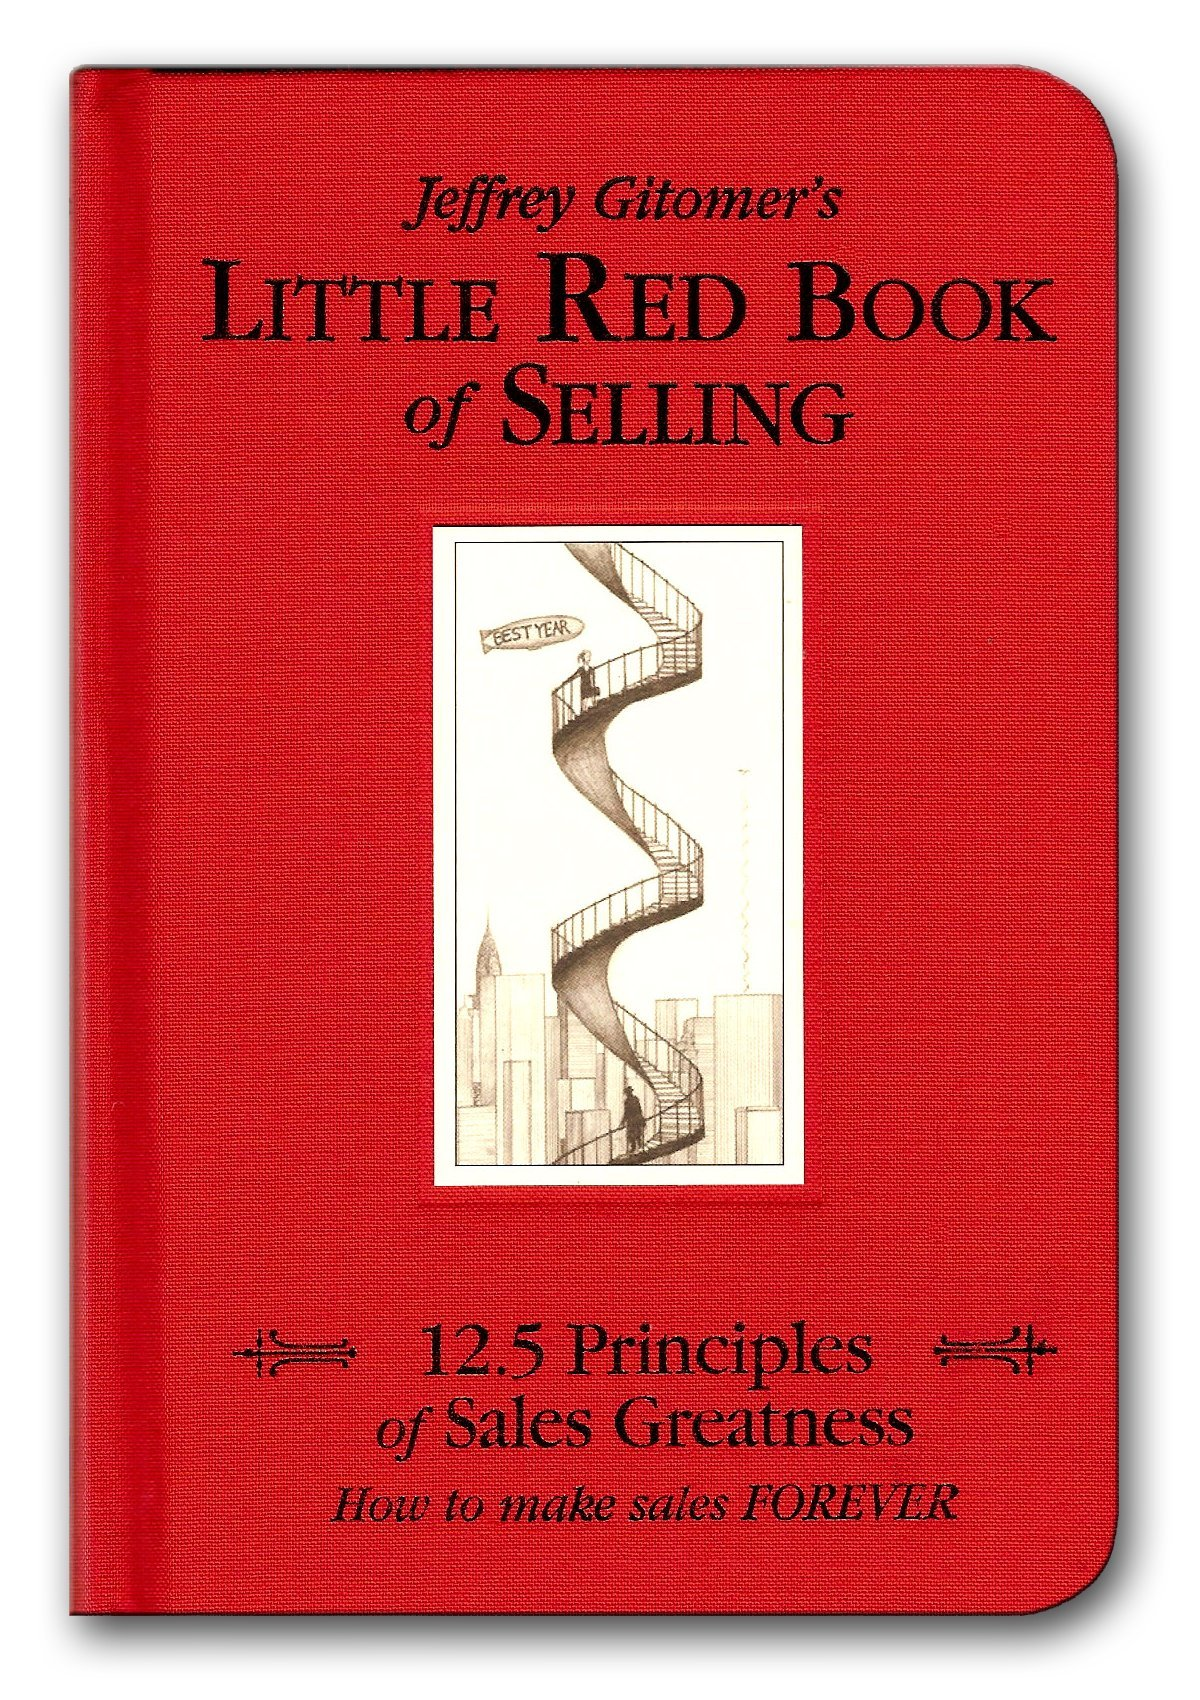 LittleRedBook